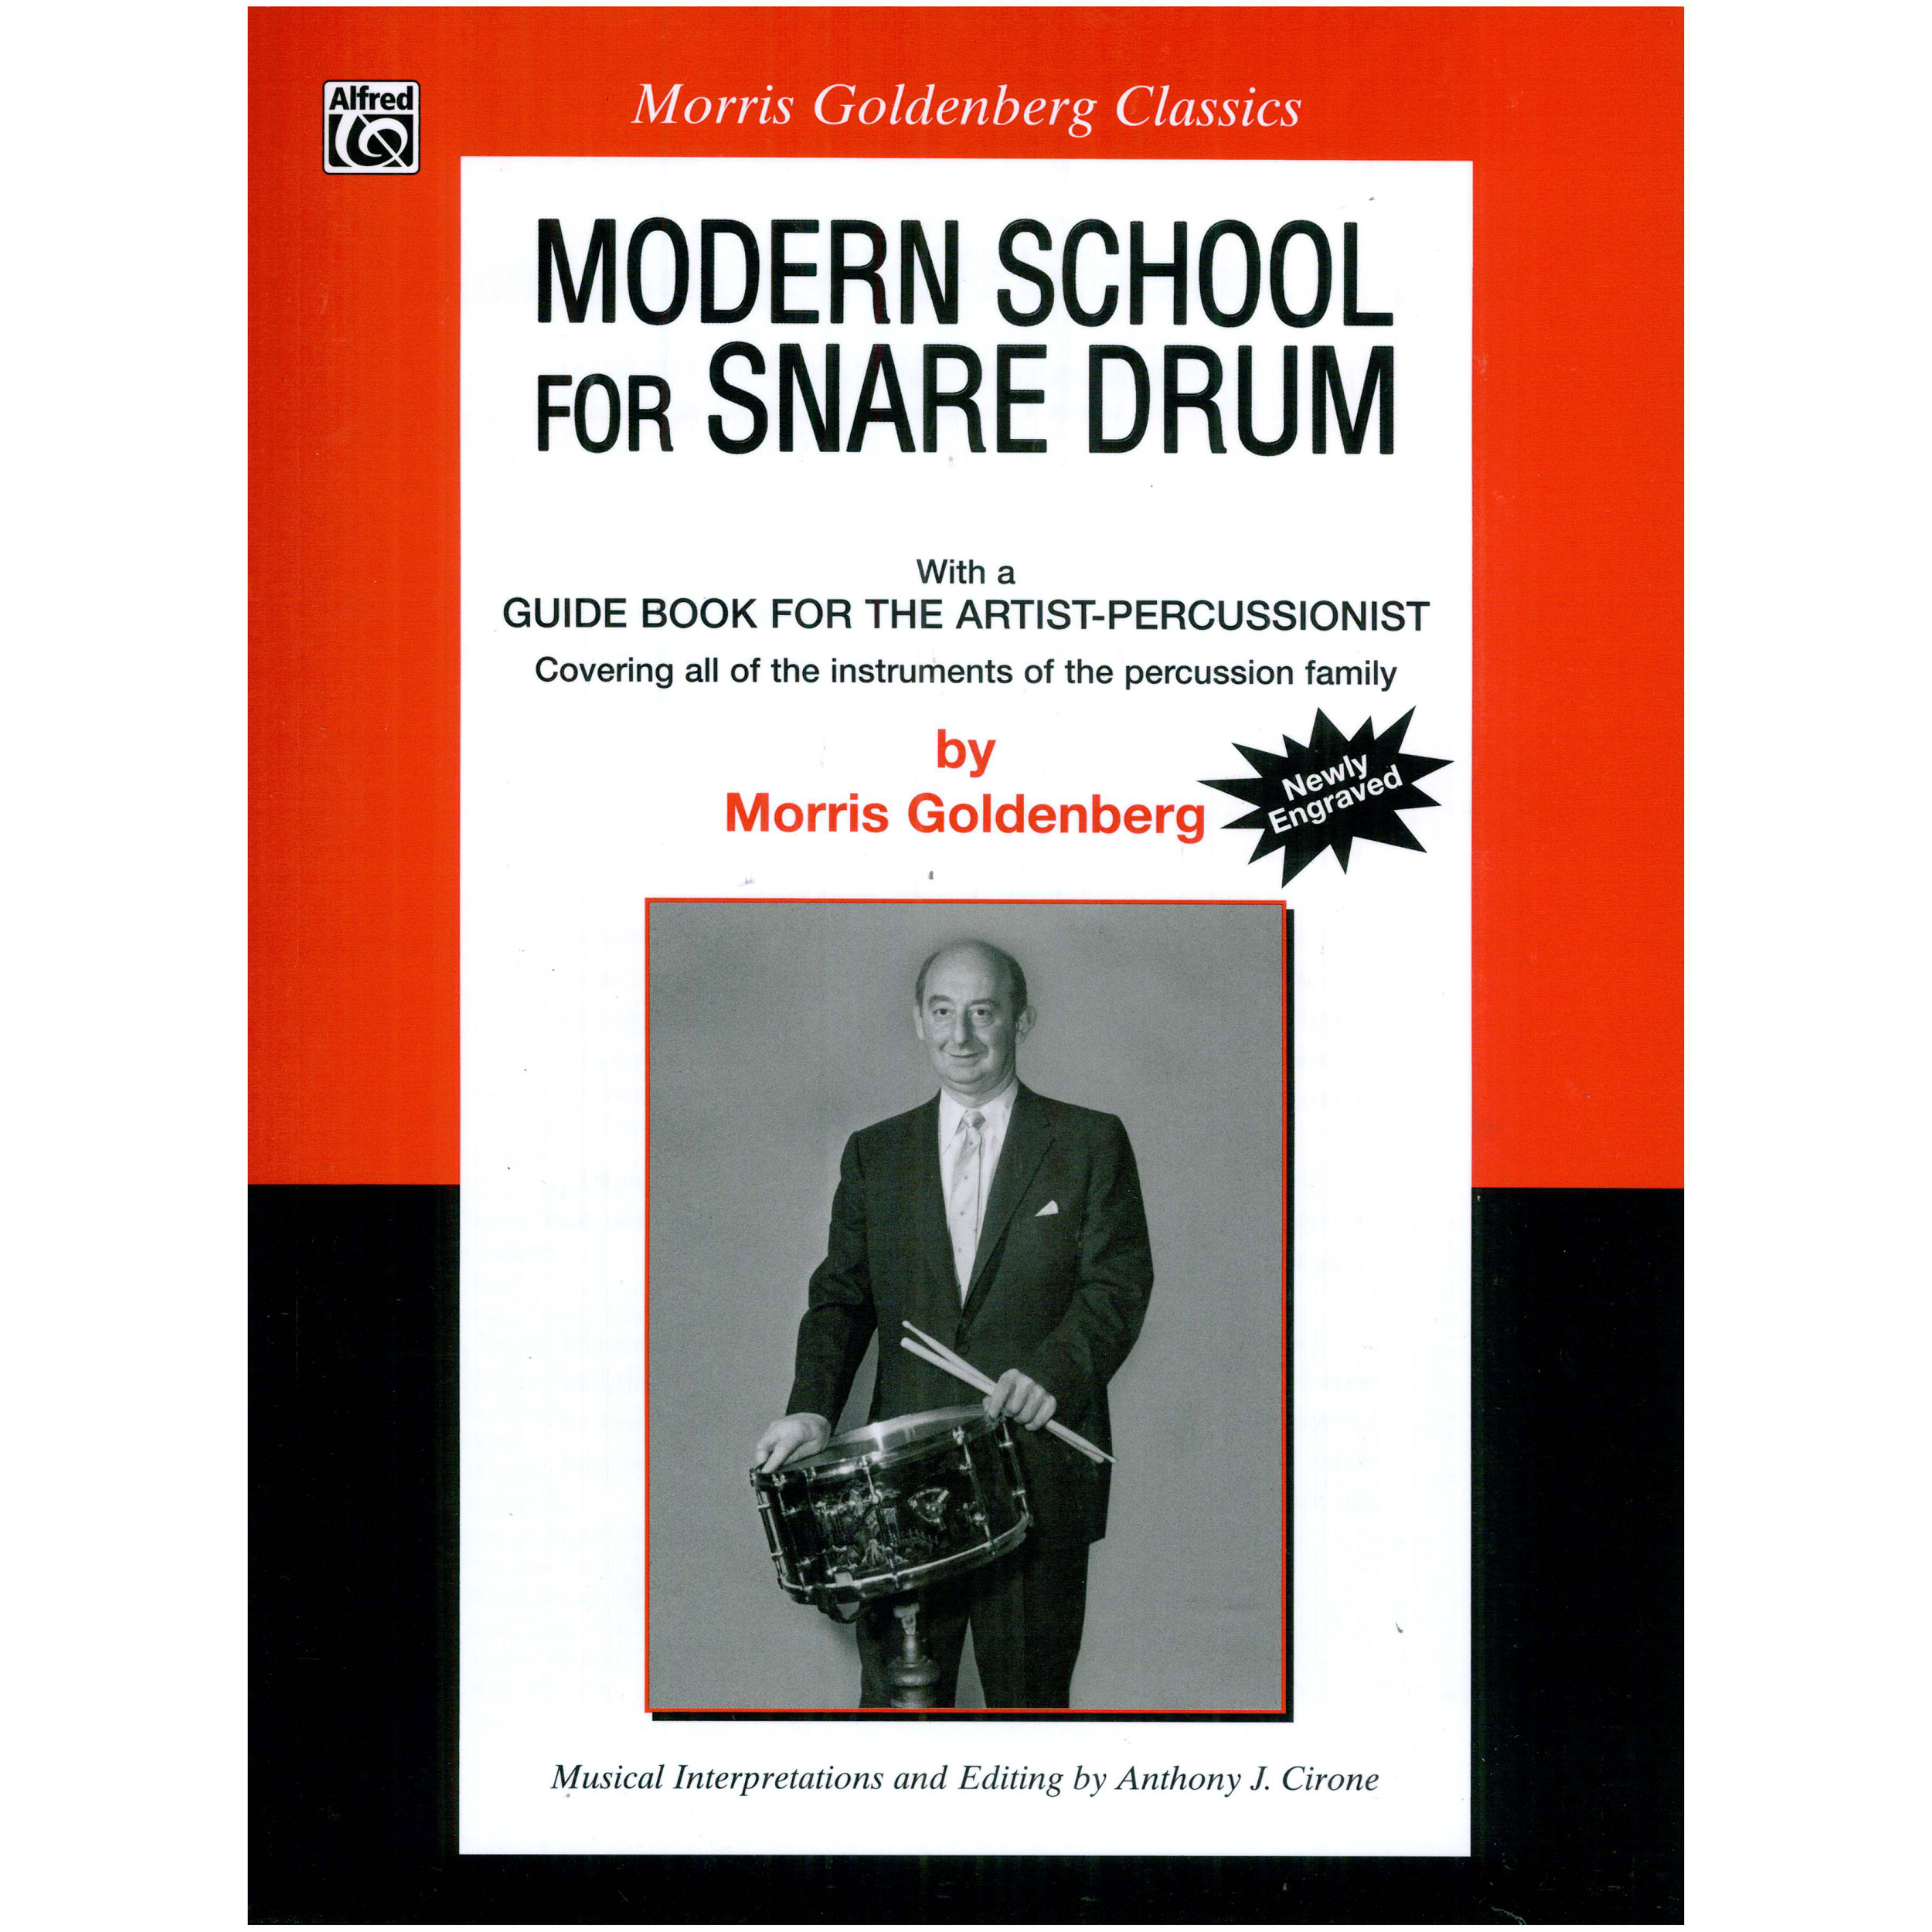 Modern School for Snare Drum by Morris Goldenberg